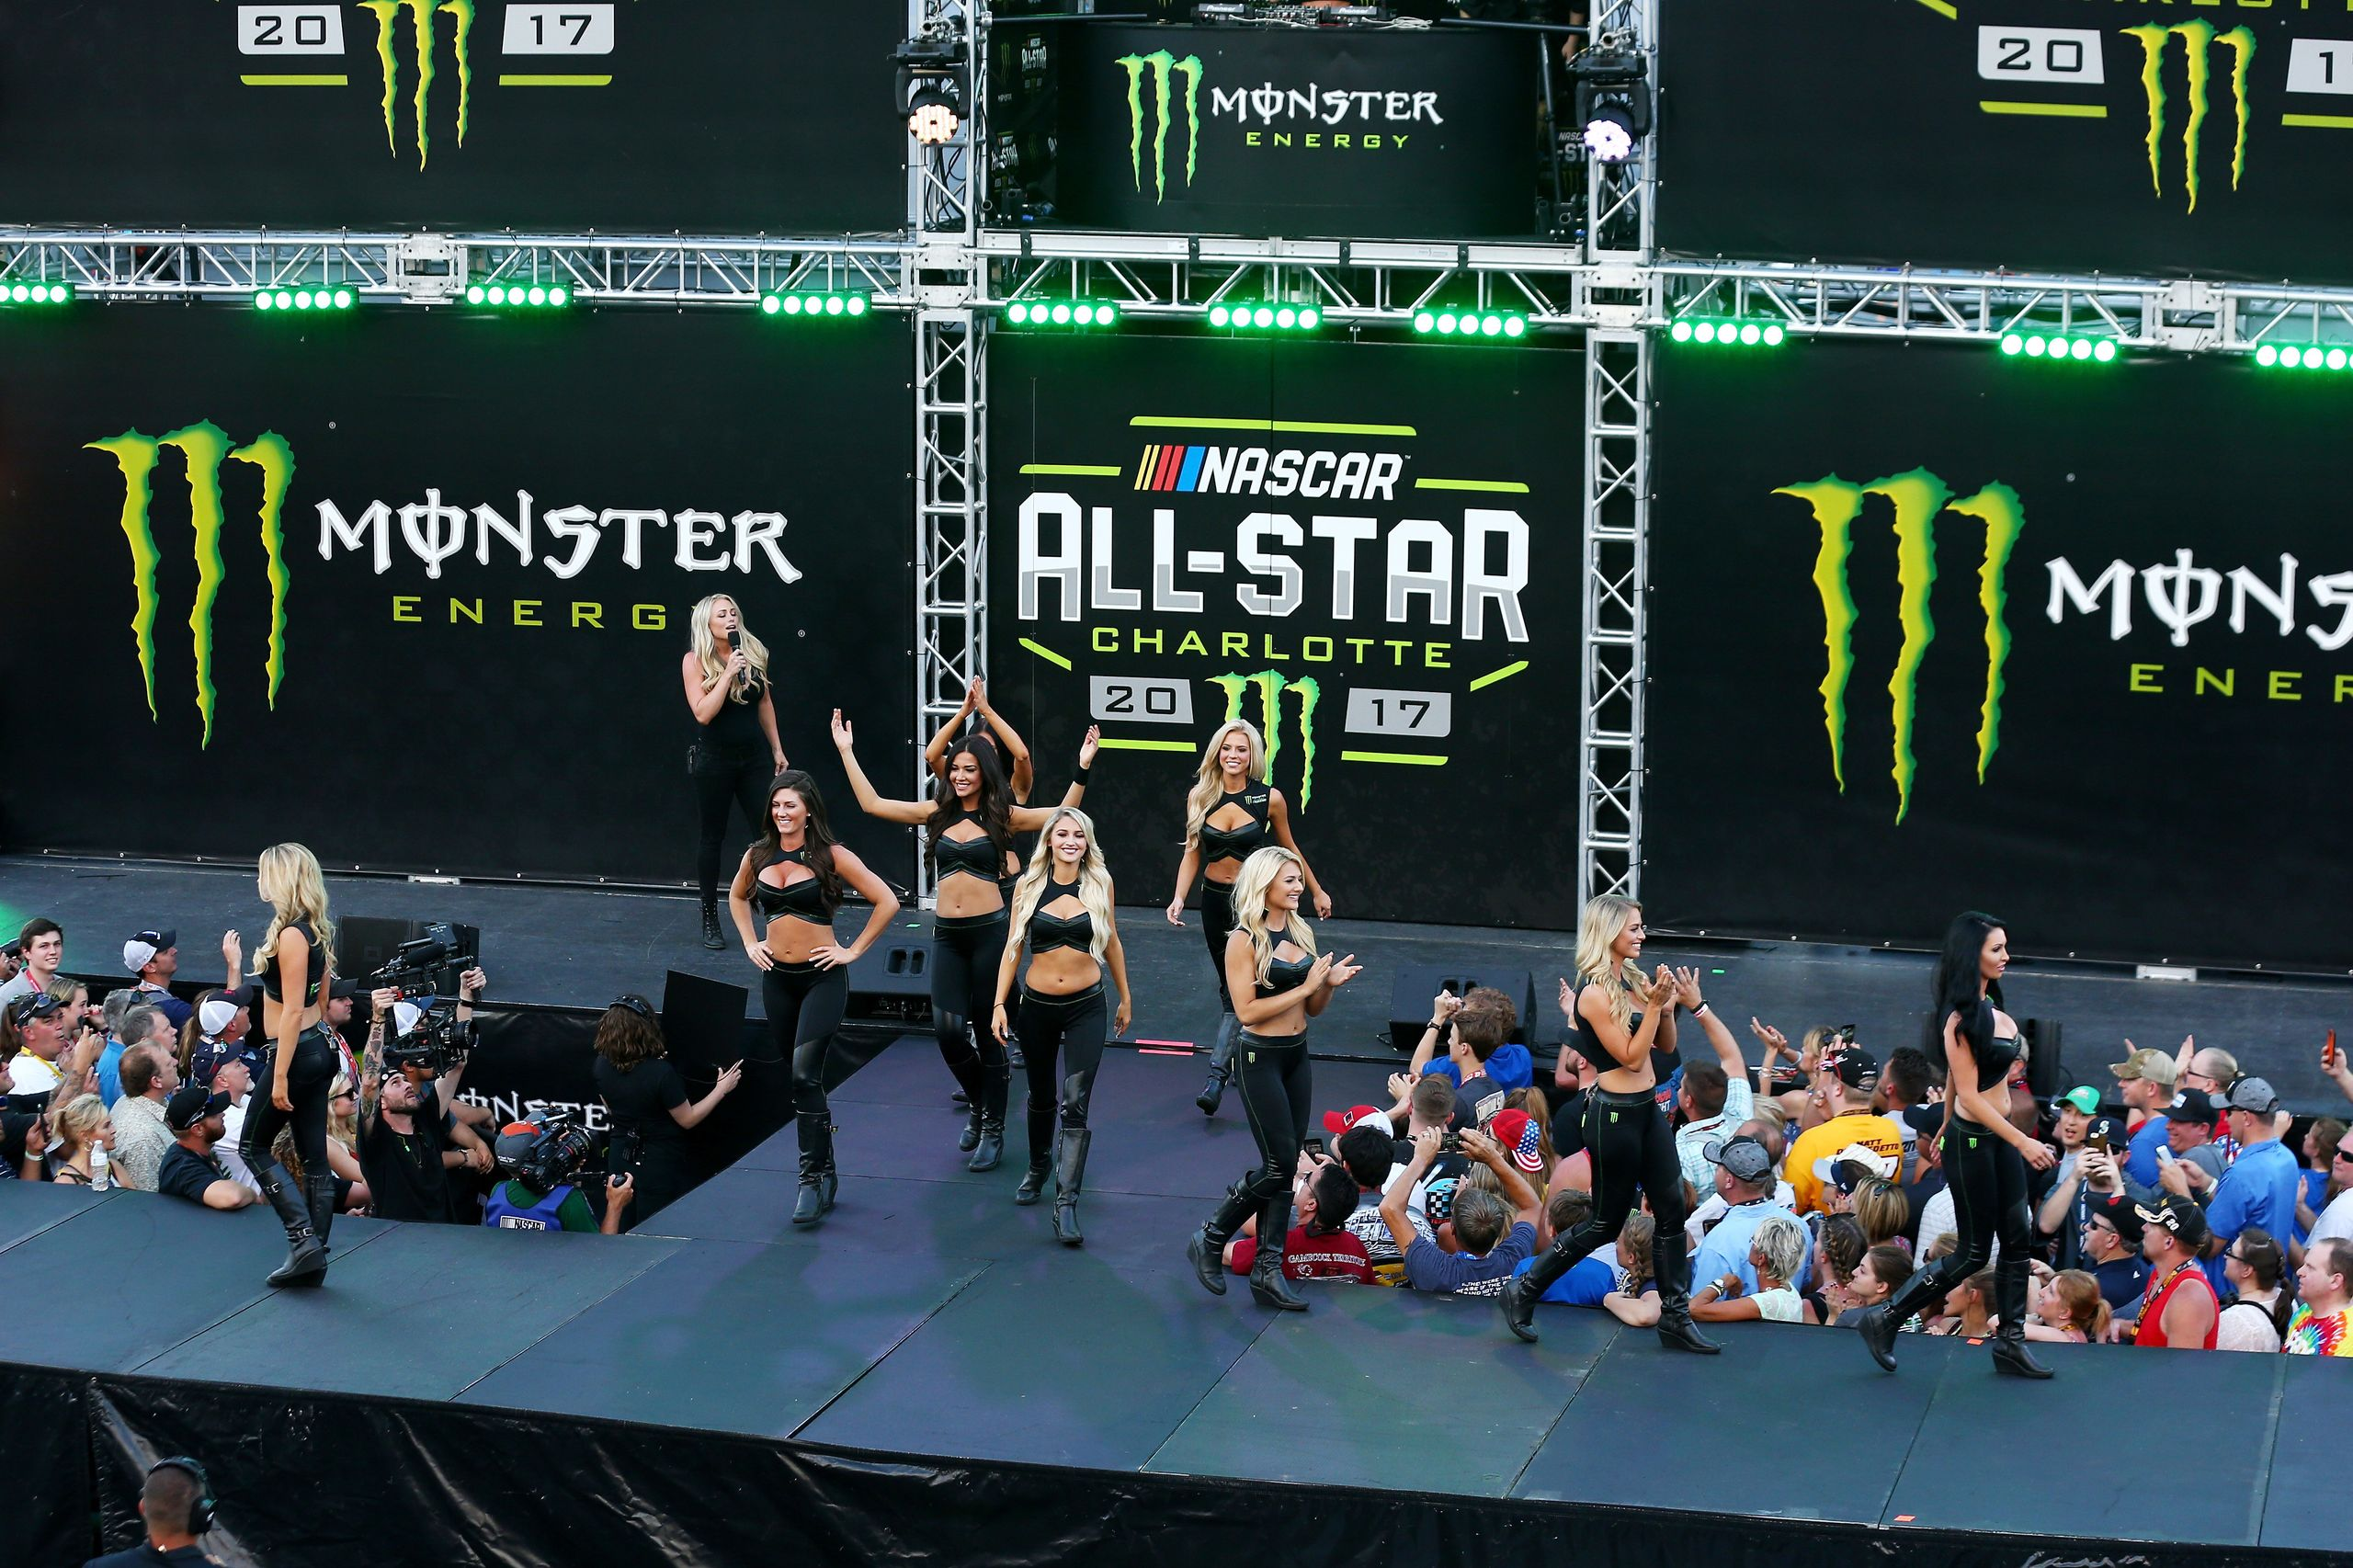 Monster Girls entertain the crowd at the Monster Energy NASCAR All Star Race in Charlotte, North Carolina, on May 20, 2017.&n